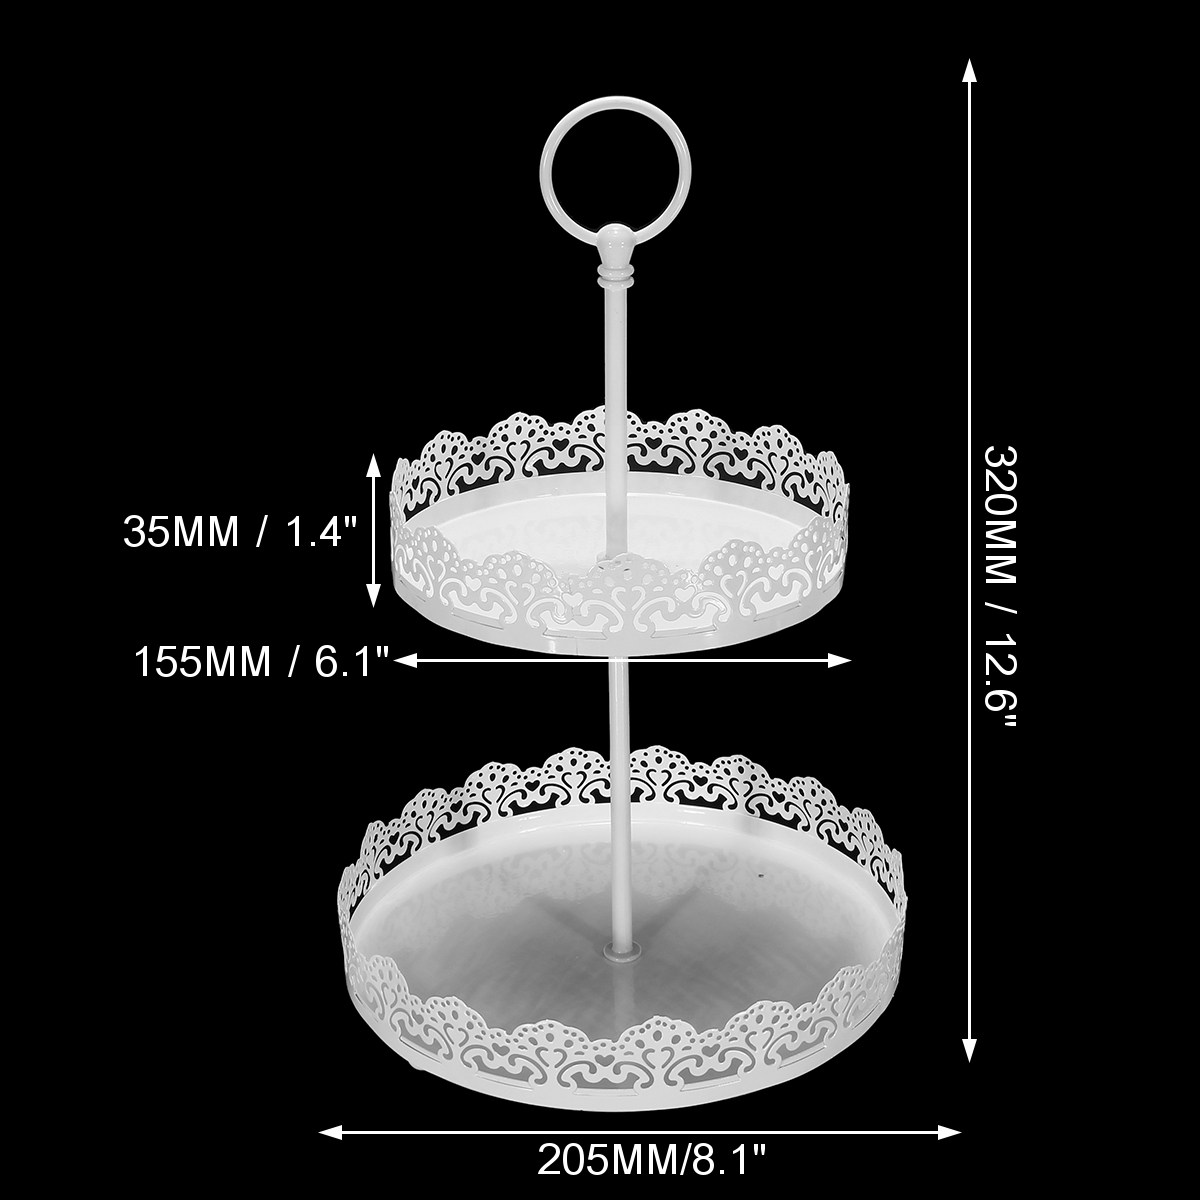 Vintage 2 Tiers Metal Cake Stand Plate Tray Jewelry Iron Display Holder Birthday Party Wedding Decoration Dessert Serving Rack-in Stands from Home \u0026 Garden ...  sc 1 st  AliExpress.com & Vintage 2 Tiers Metal Cake Stand Plate Tray Jewelry Iron Display ...